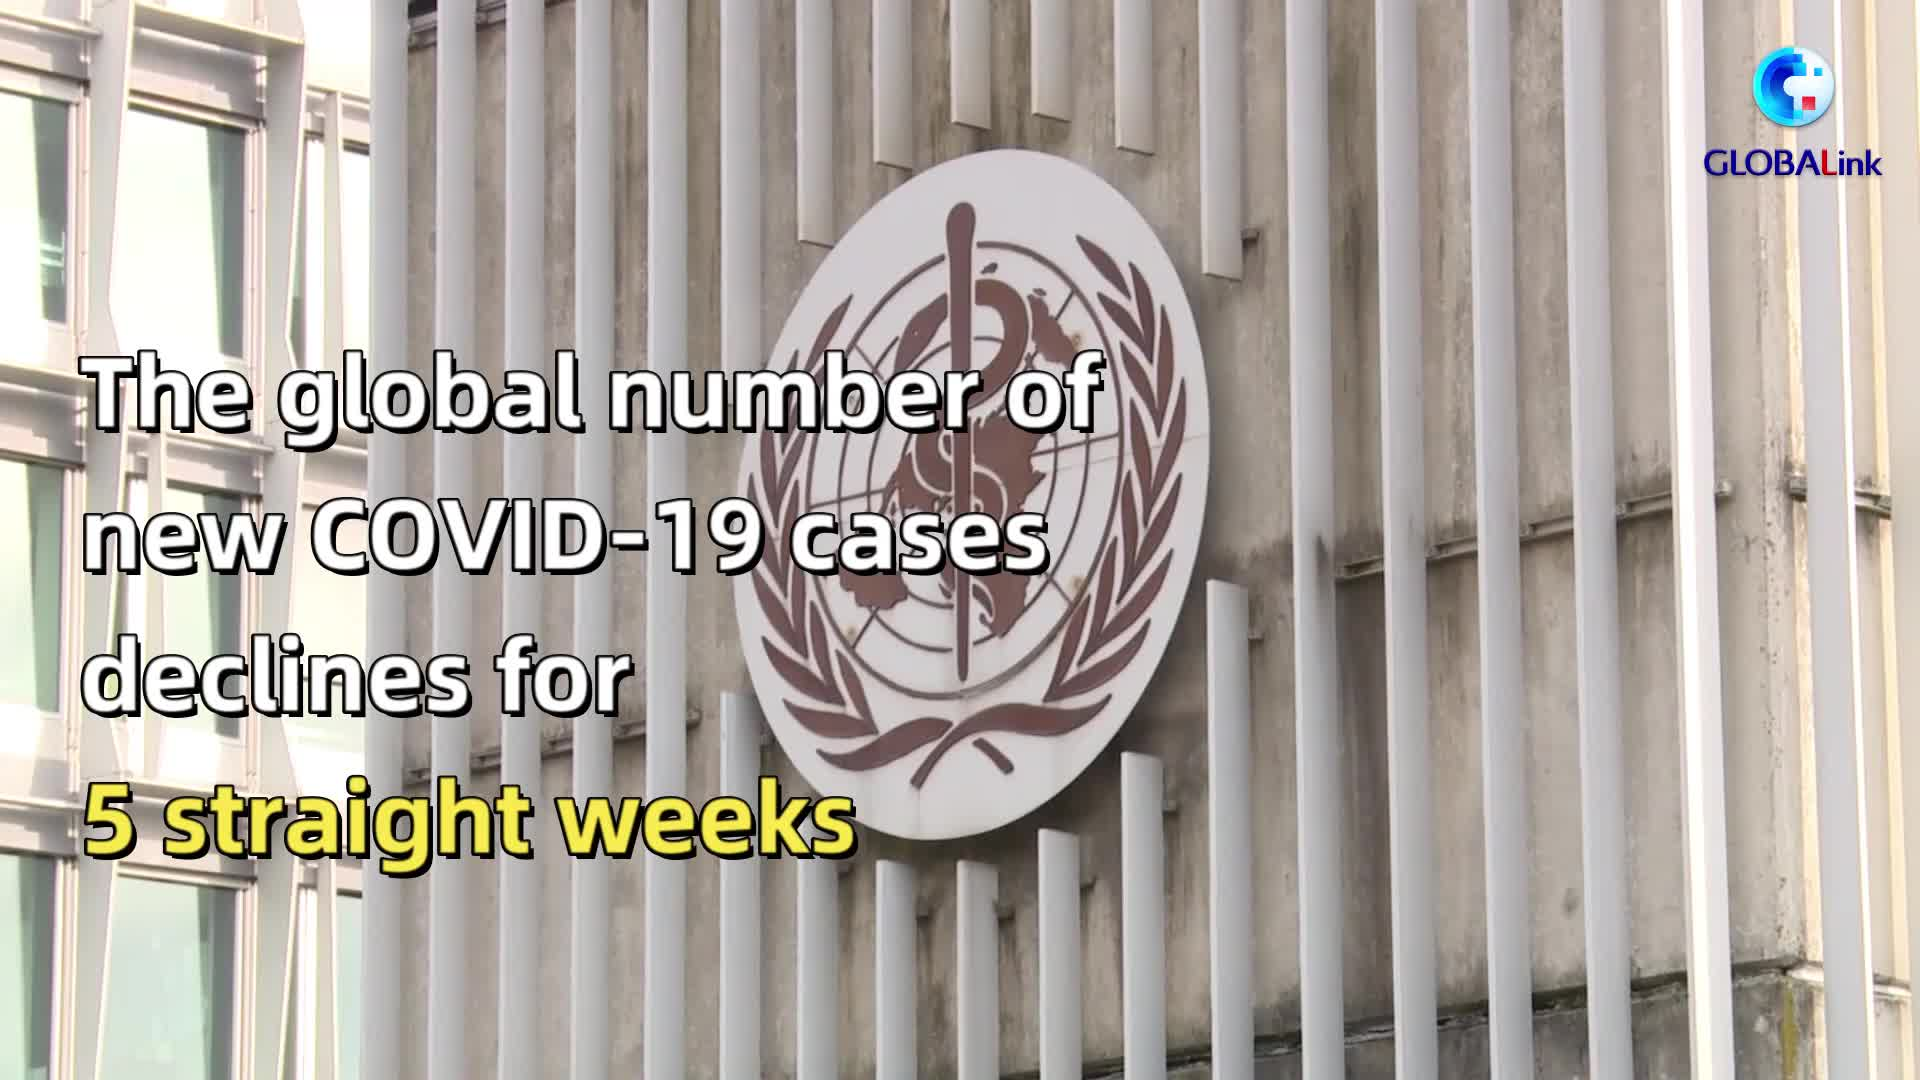 GLOBALink| Global new COVID-19 cases decline for 5 straight weeks, almost halved